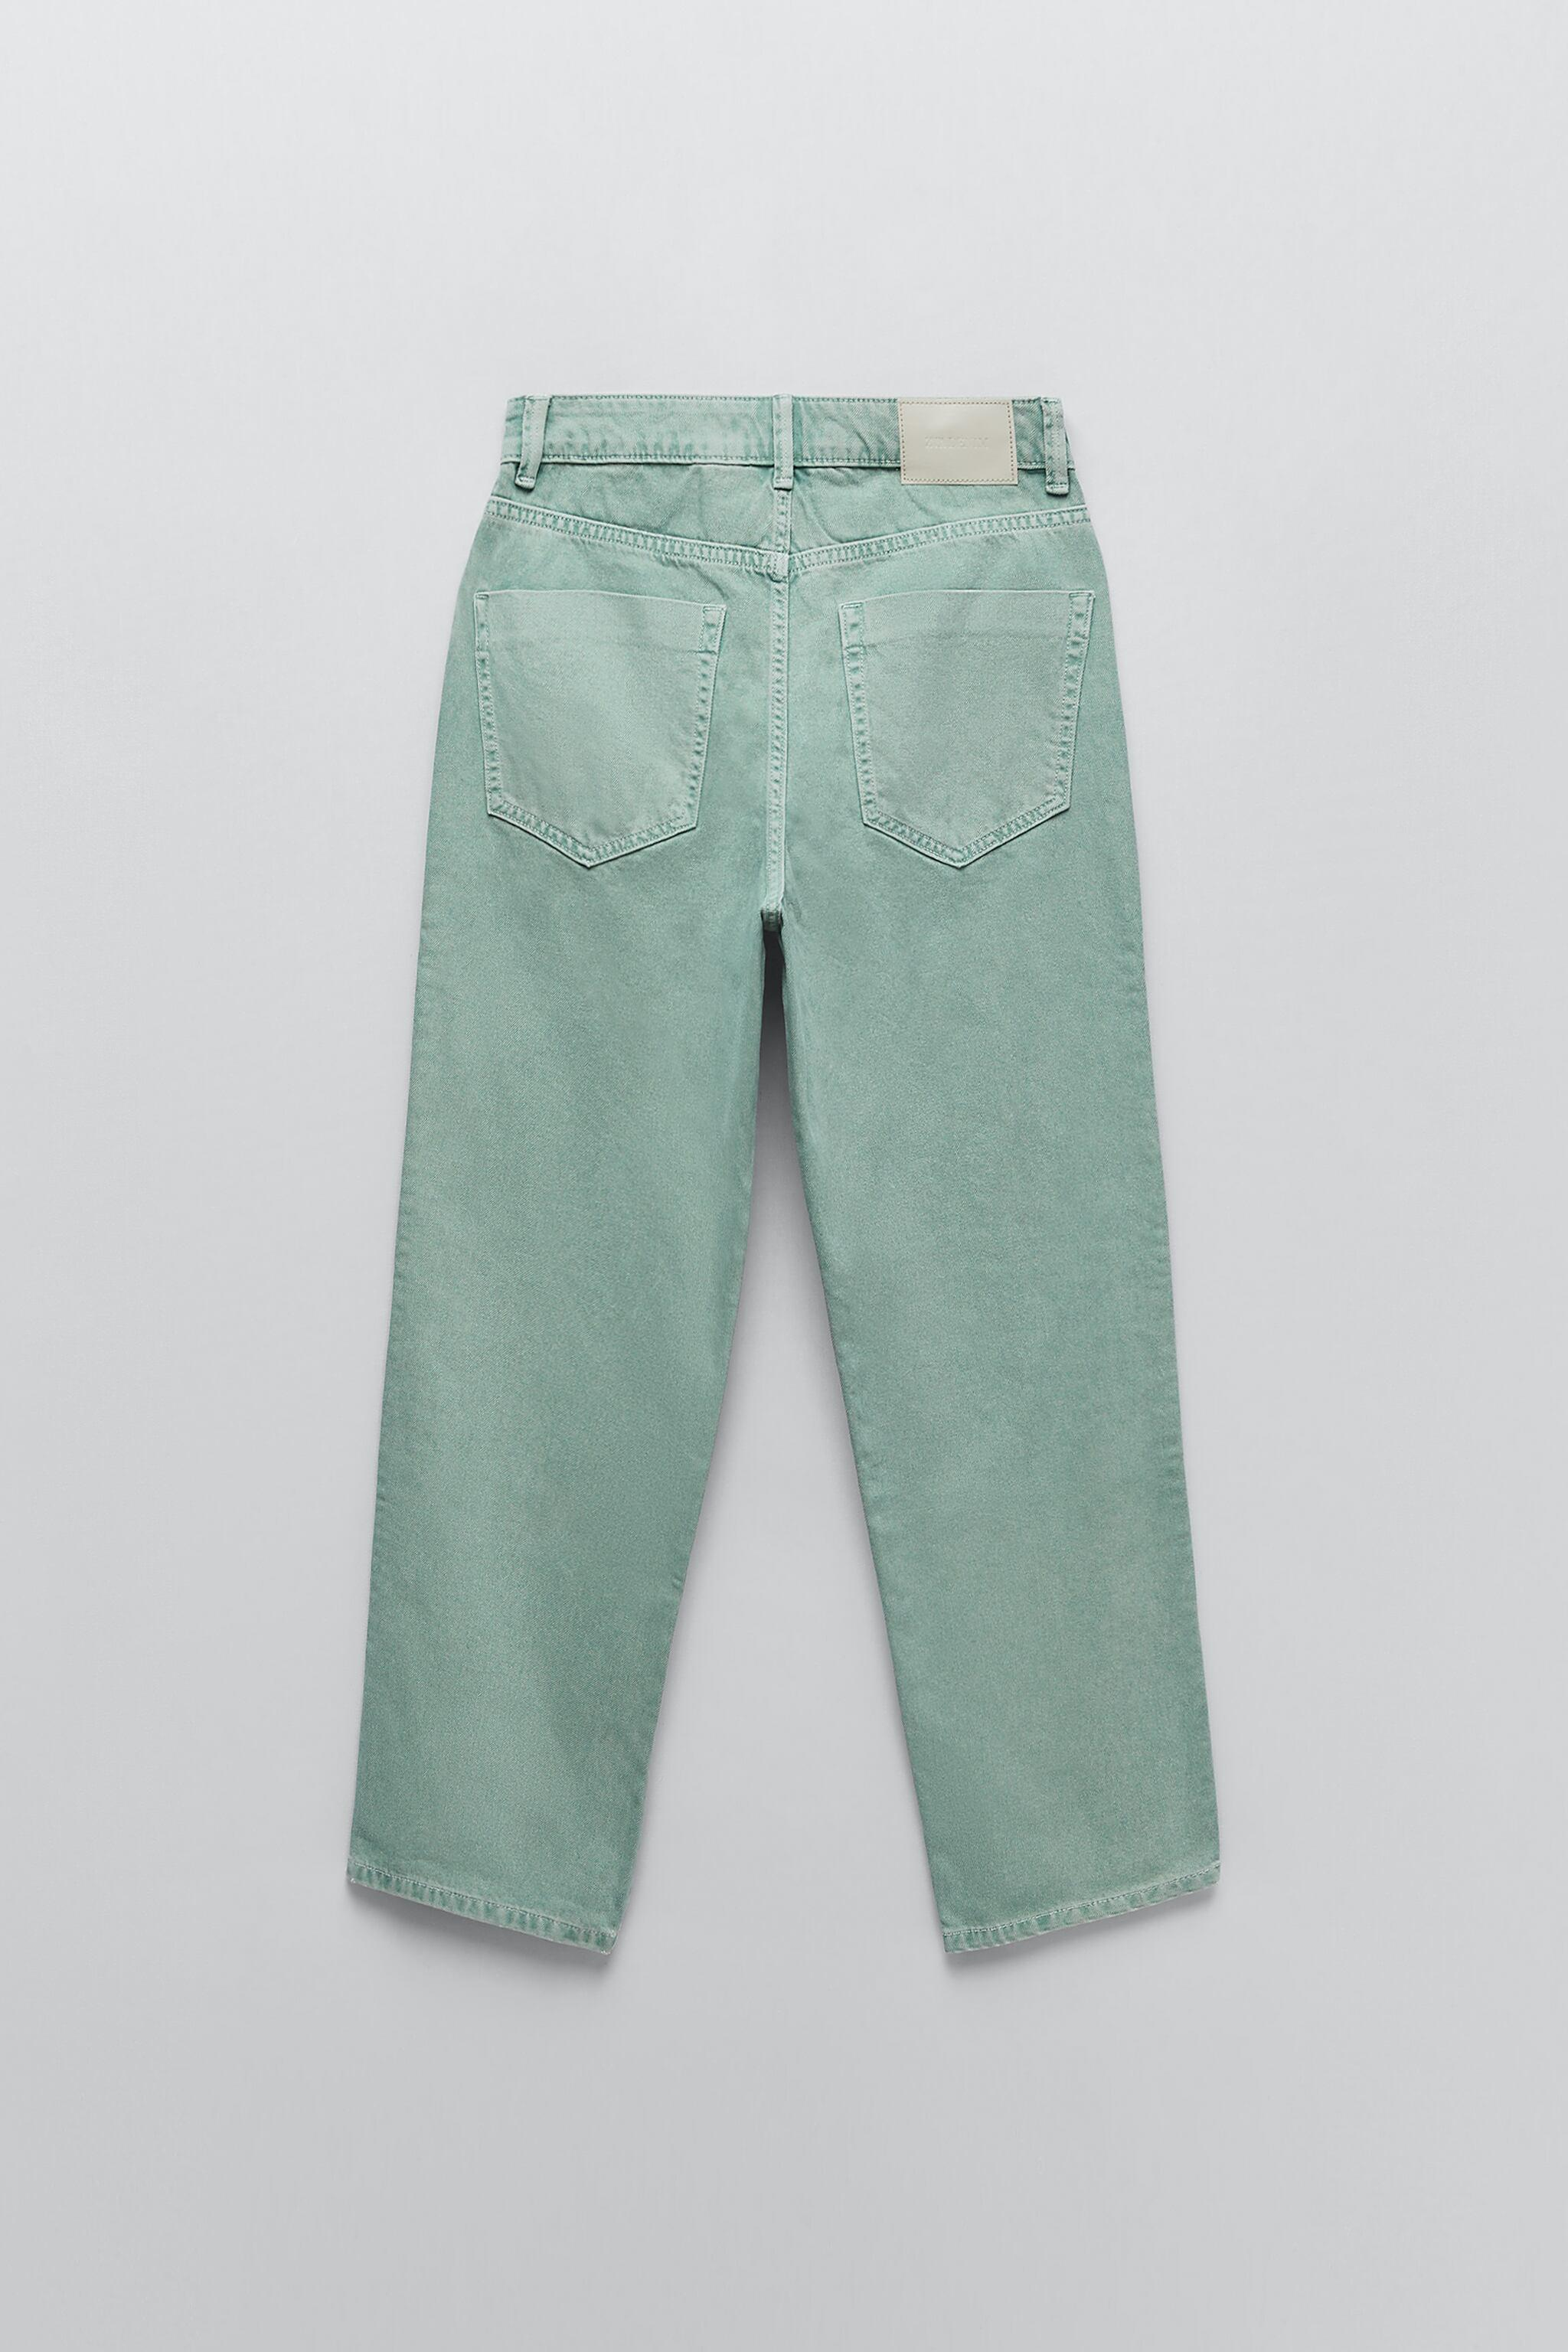 Z1975 HIGH RISE STRAIGHT JEANS 8